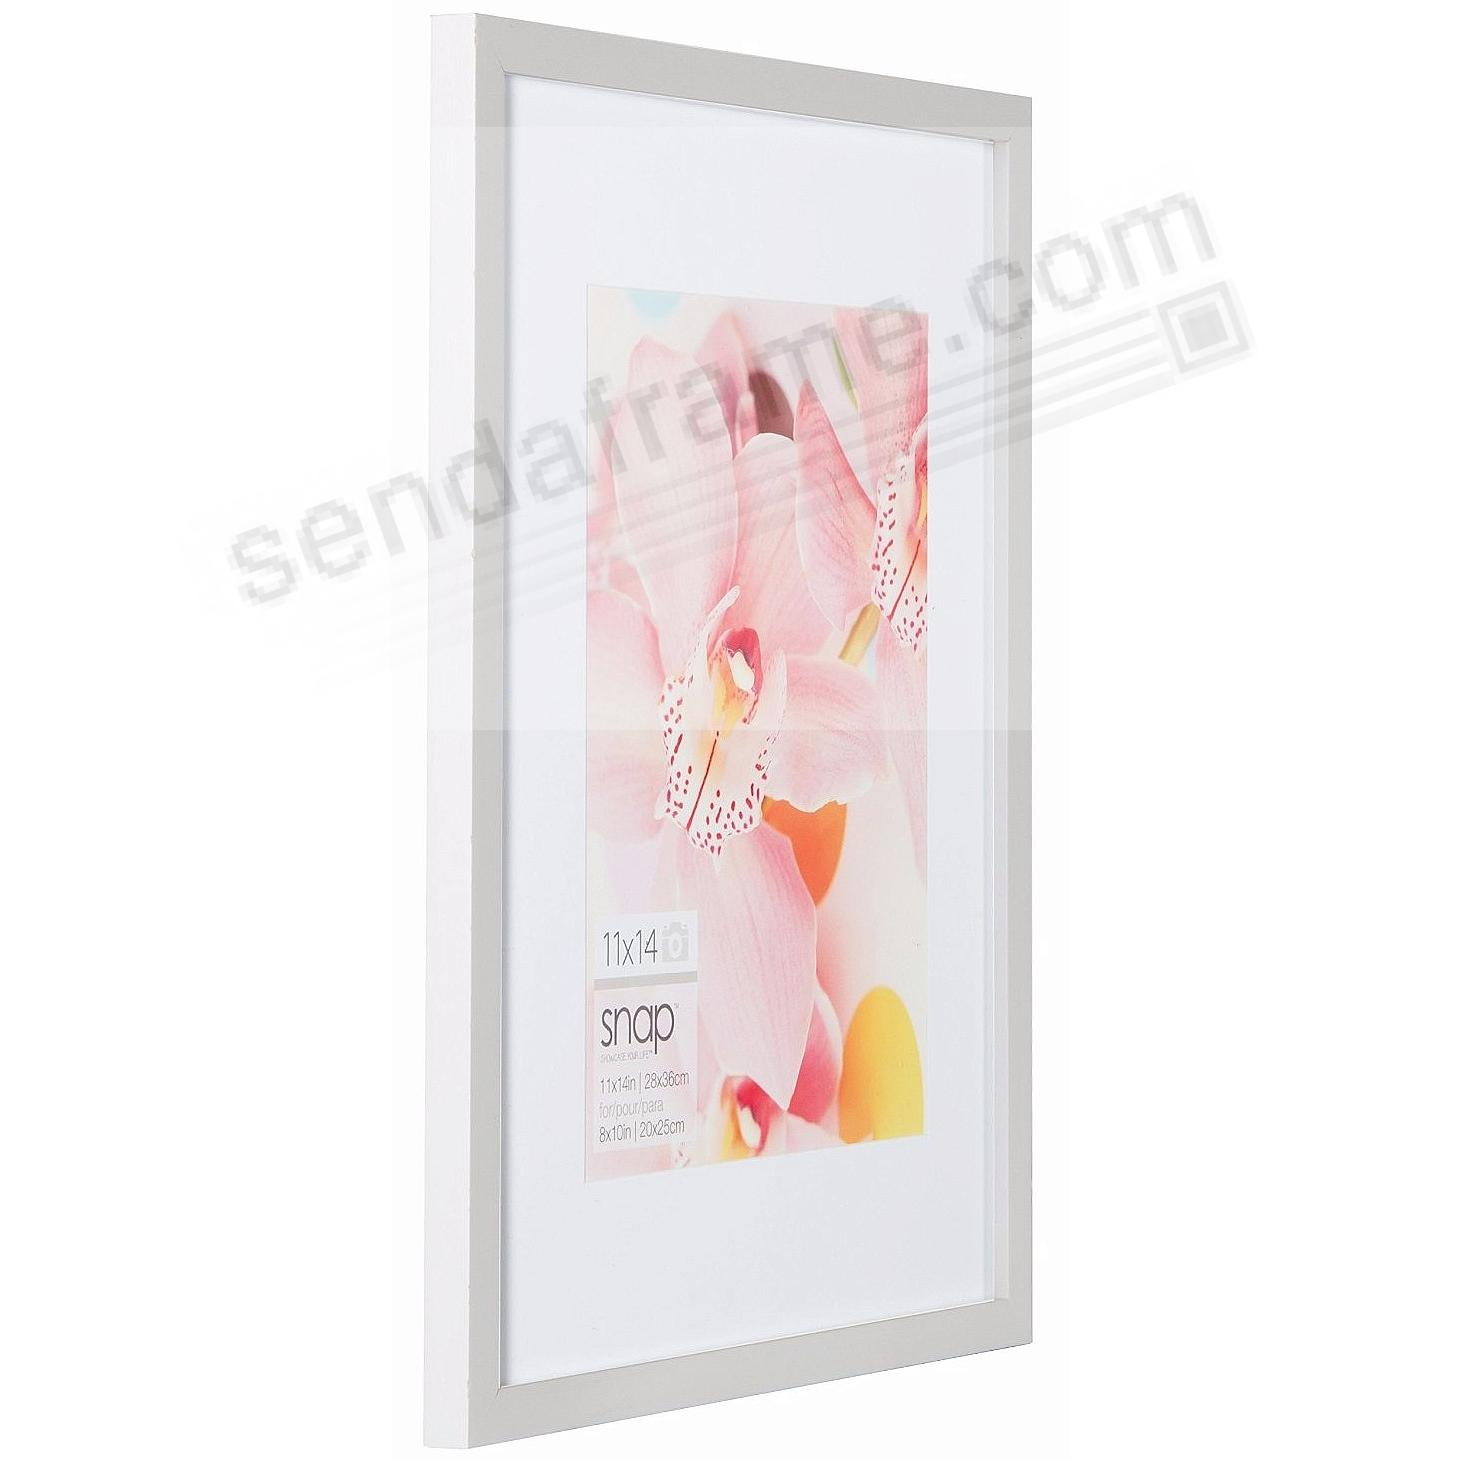 White Wood Frame 12x18 by SNAP™ - Picture Frames, Photo Albums ...